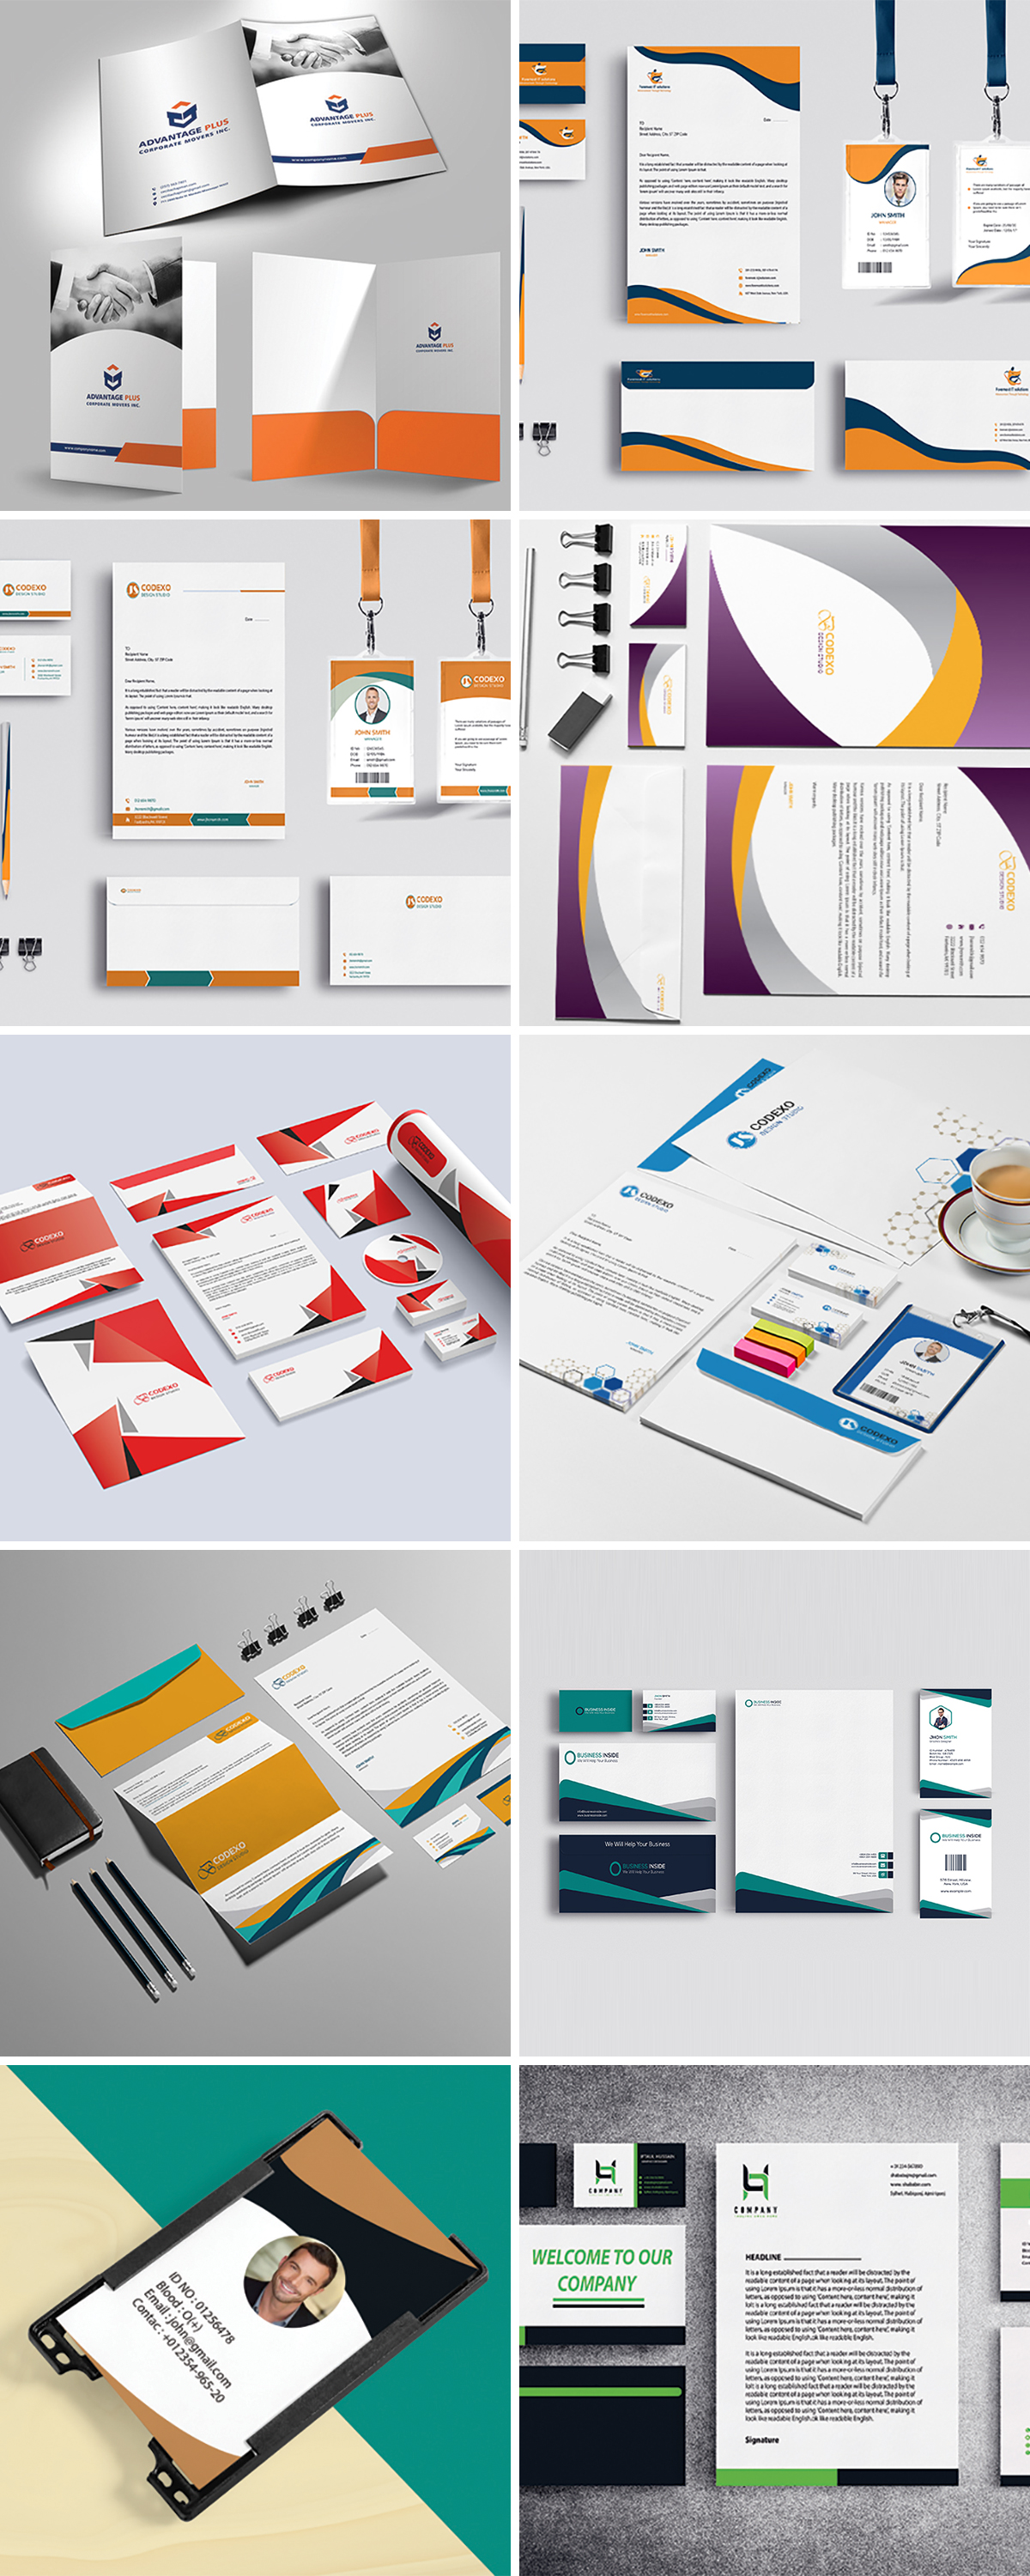 Royal Print Templates Bundle with 160 Items - Only $19 - stationery